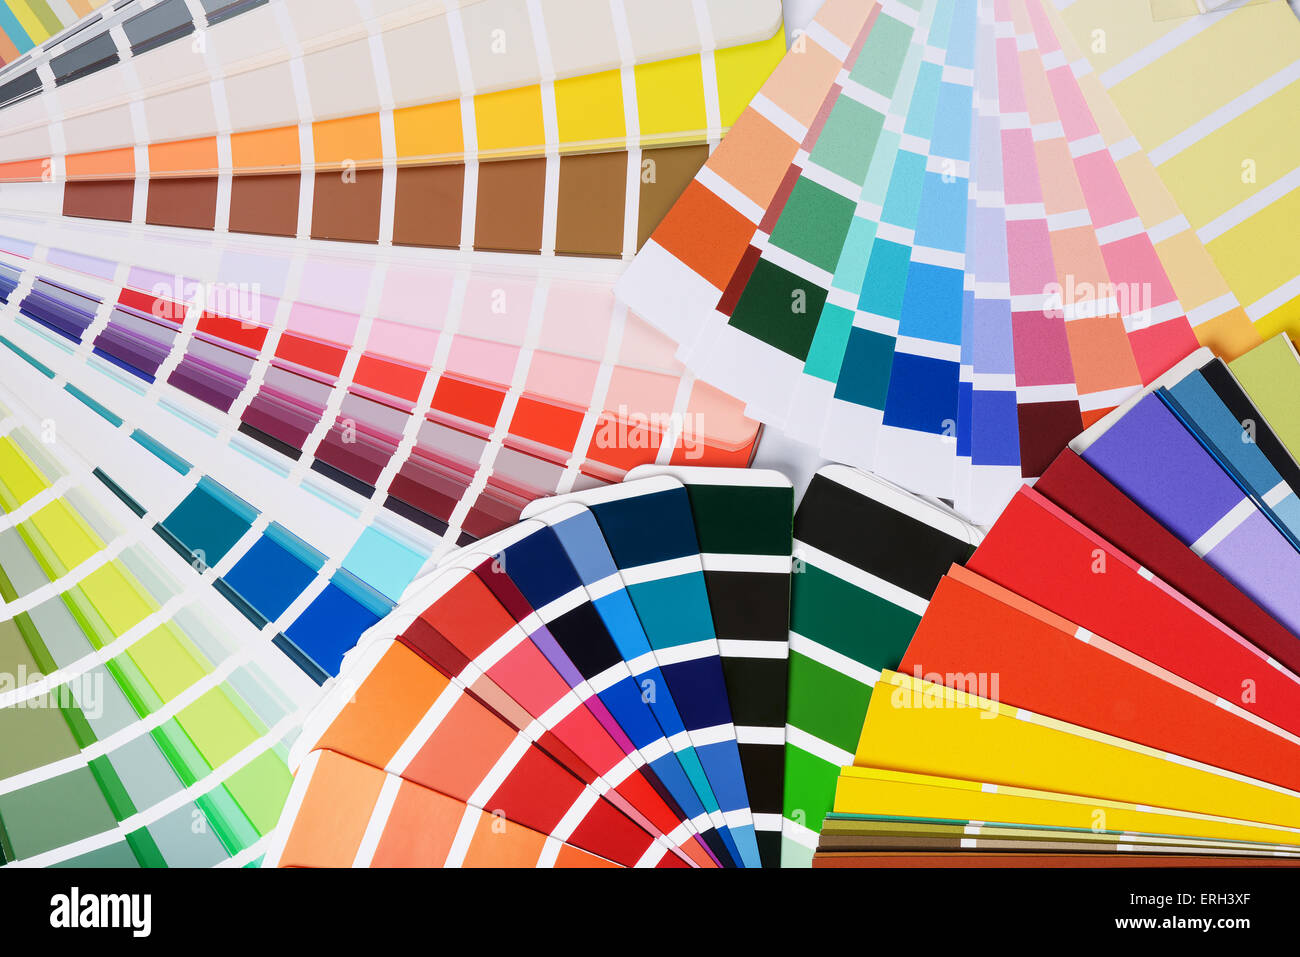 Many open color palette swatches - Stock Image